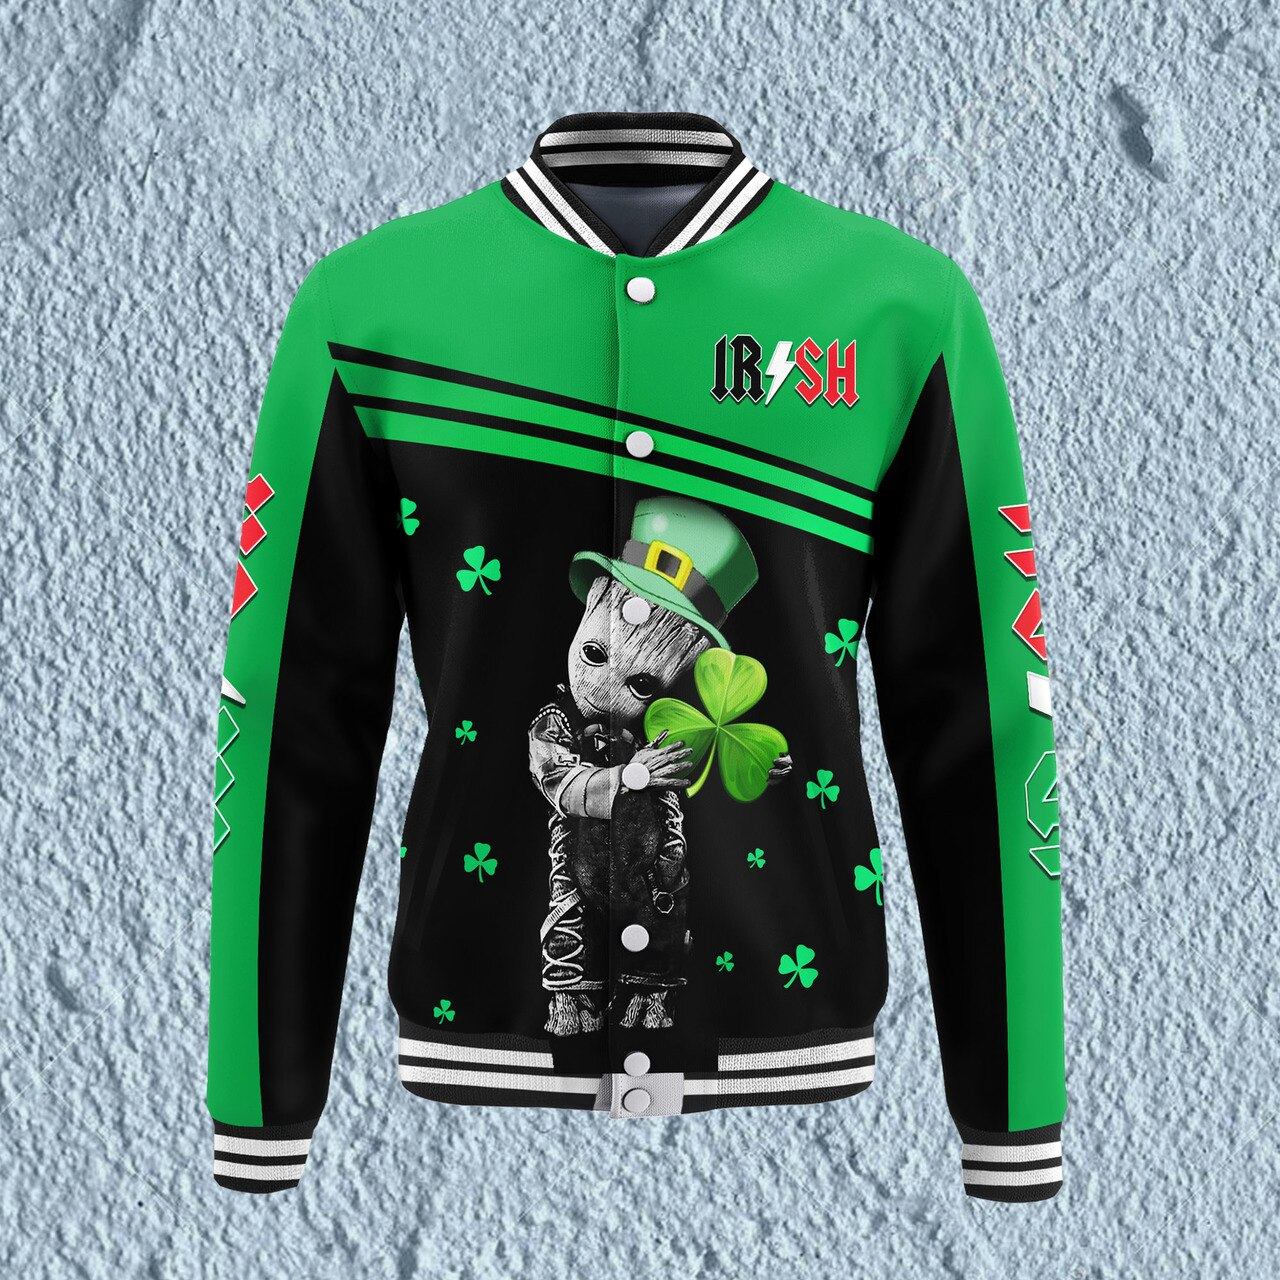 Groot hold shamrock saint patrick's day full printing baseball jacket